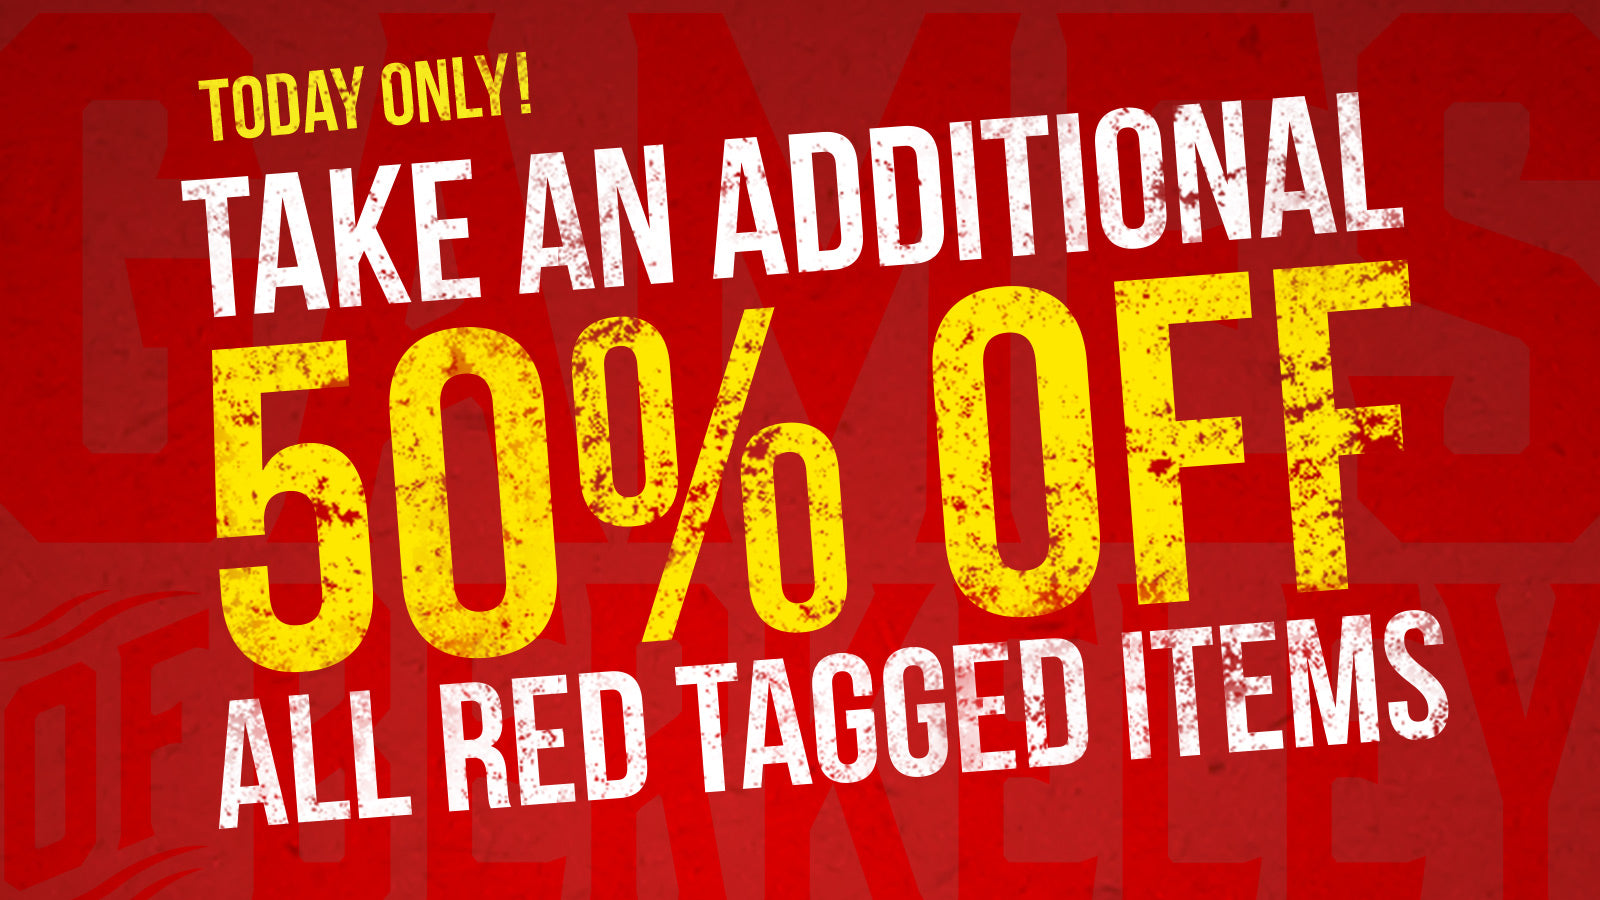 December 31 only: Take an additional 50% off our red tagged items!